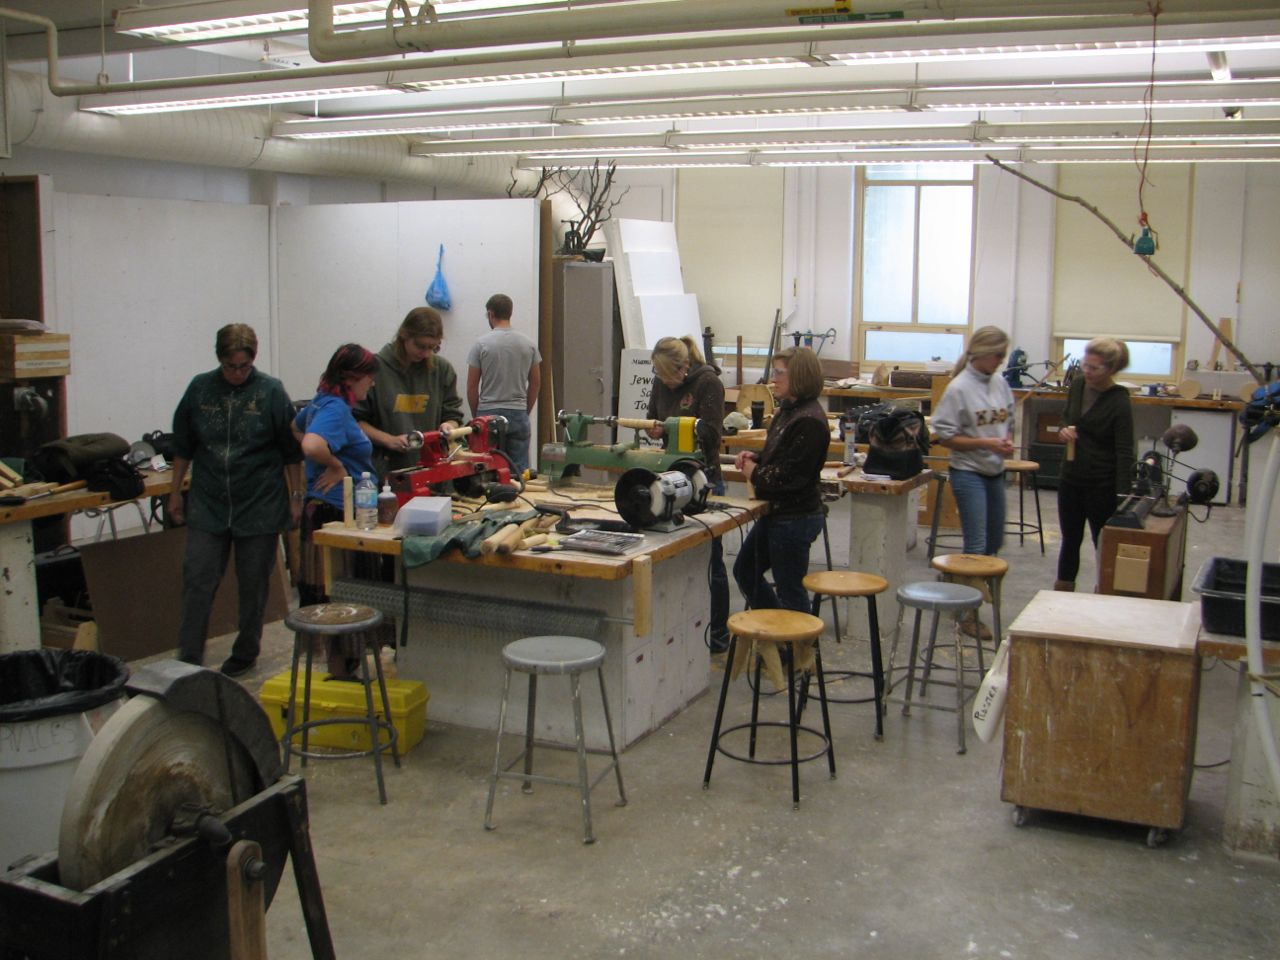 Miami University Sculpture studio with extra lathes